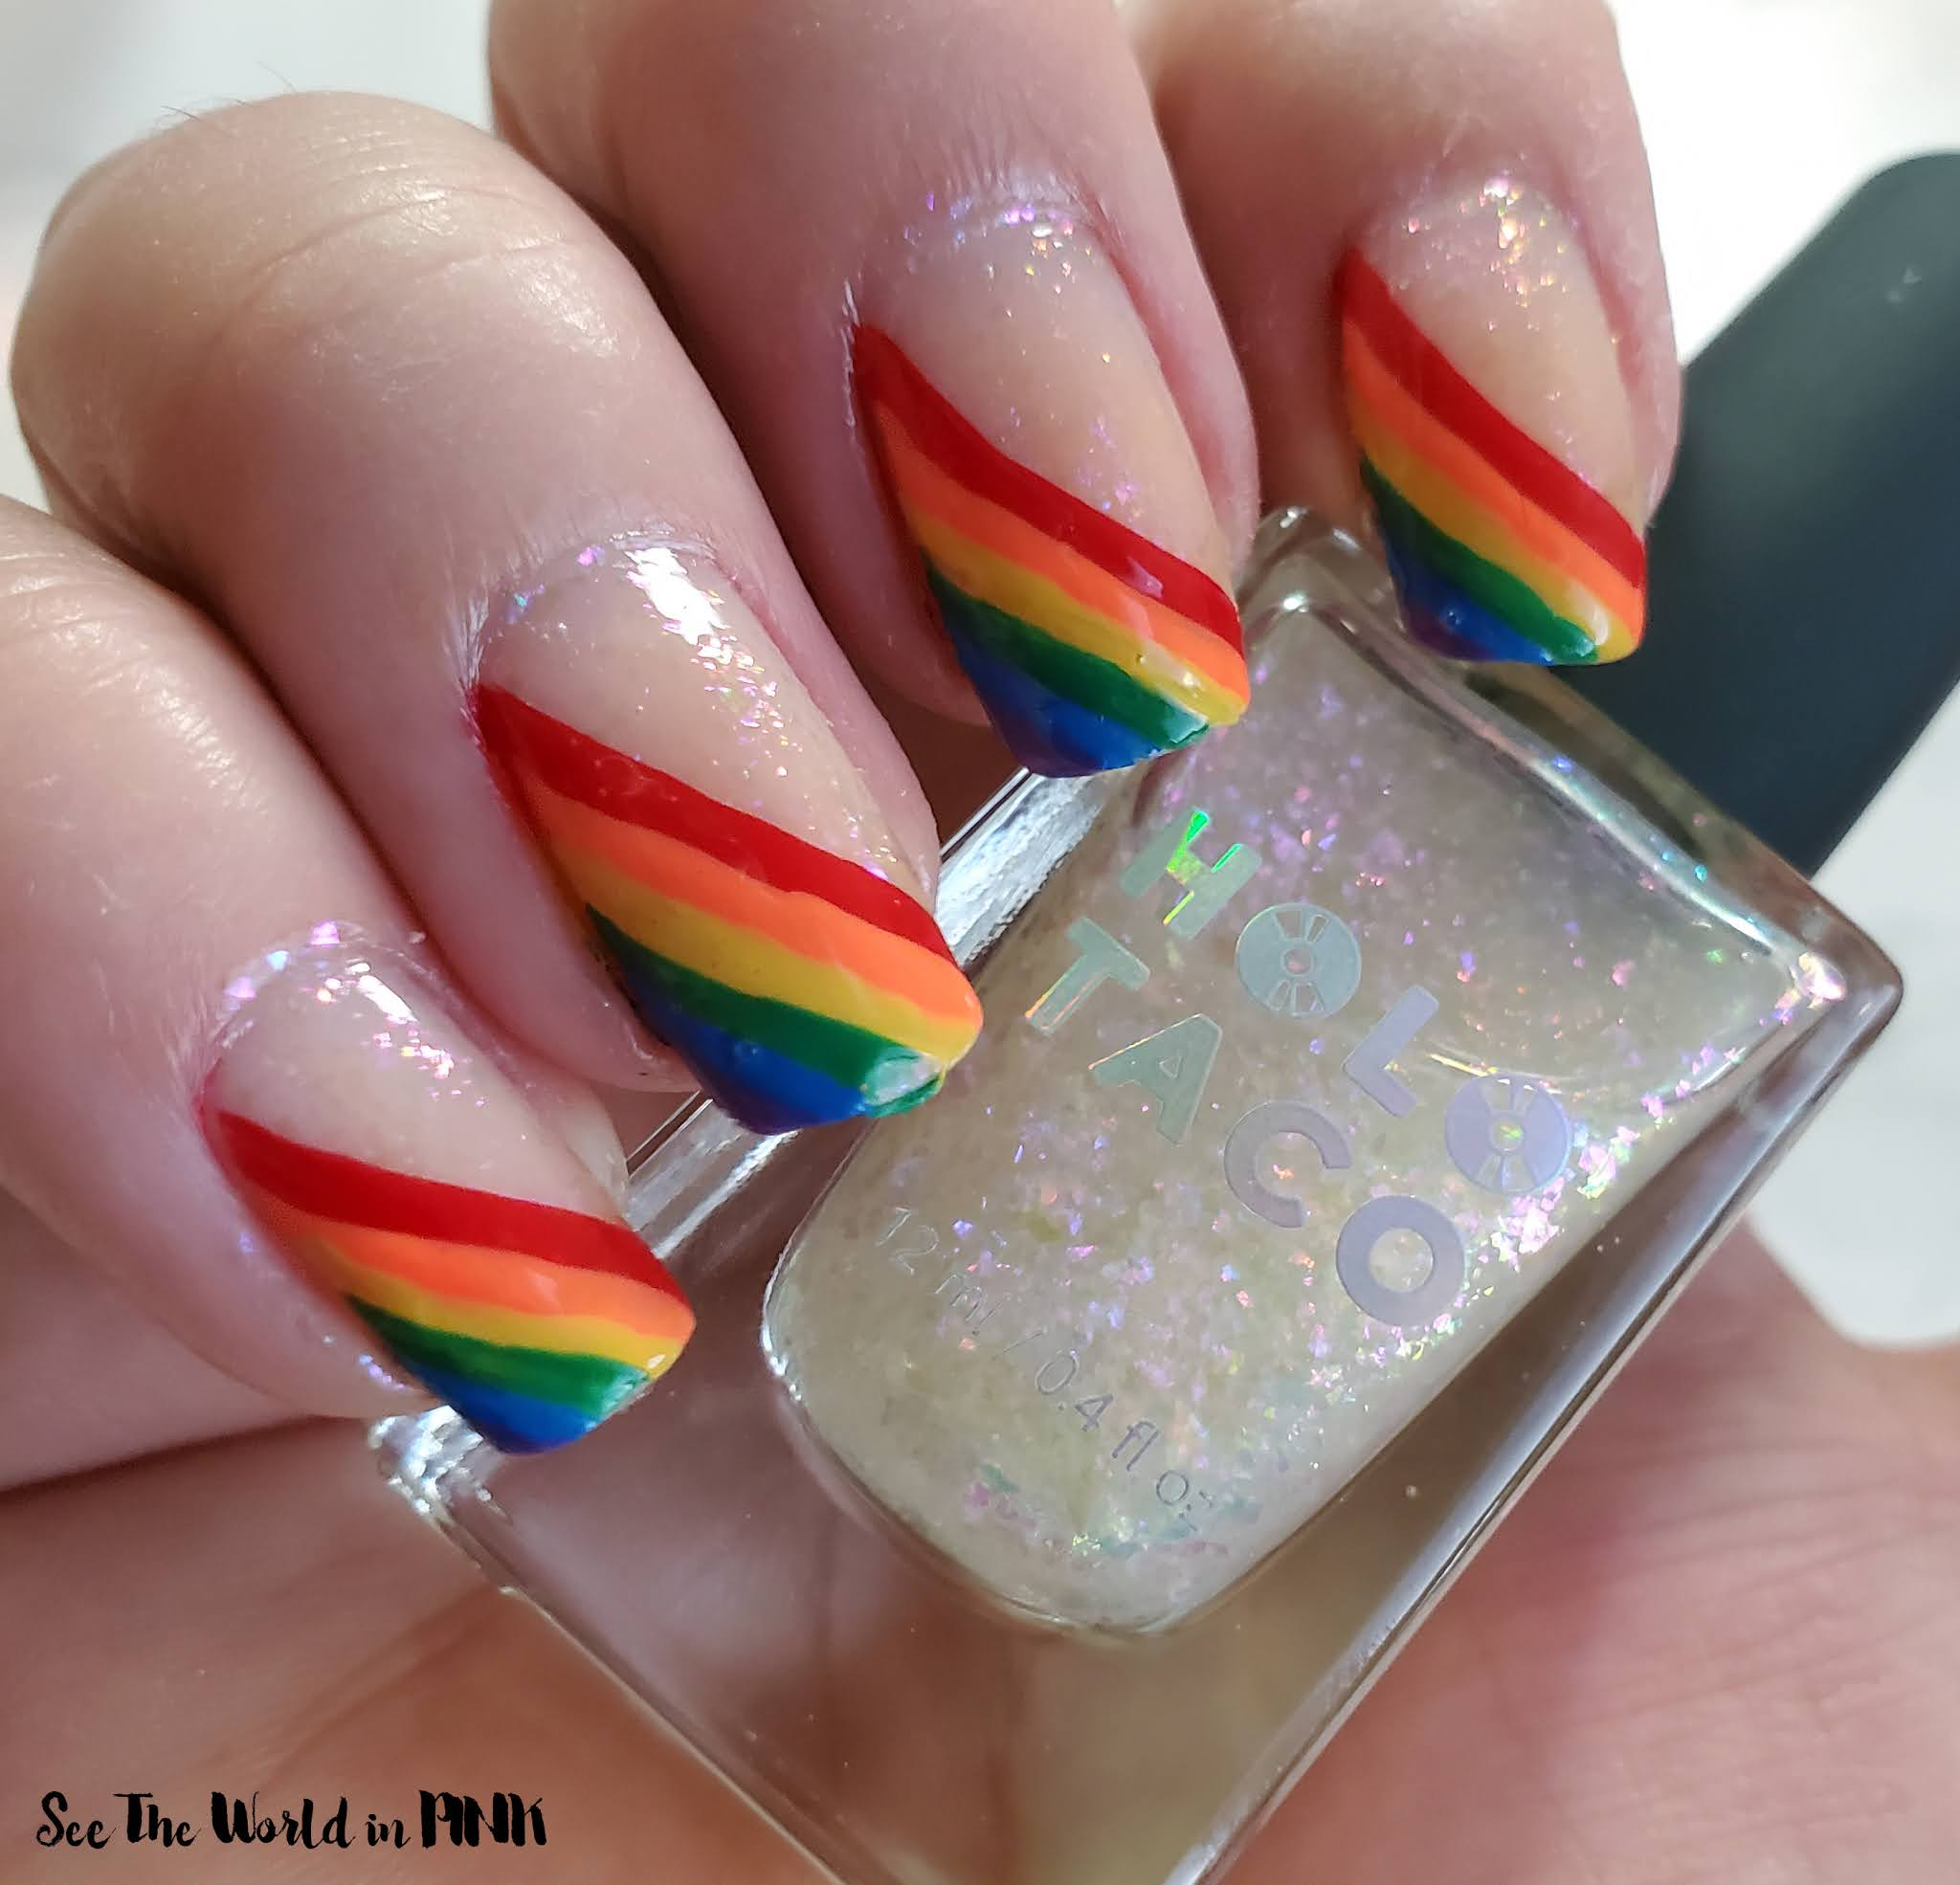 Manicure Monday - Pride Rainbow and Holographic Nails